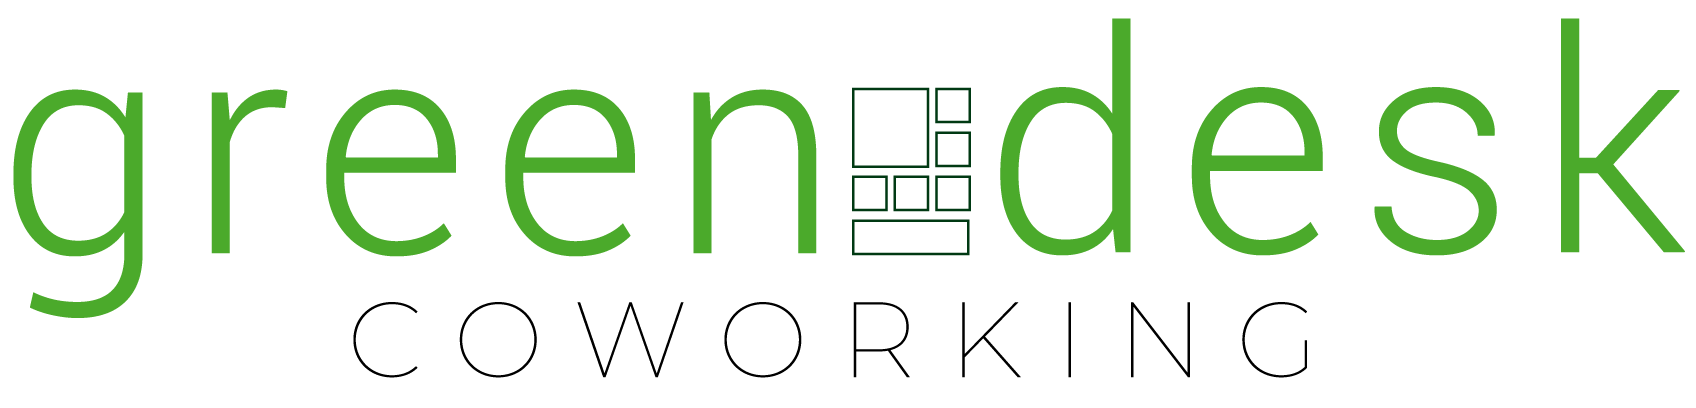 logo-greendesk